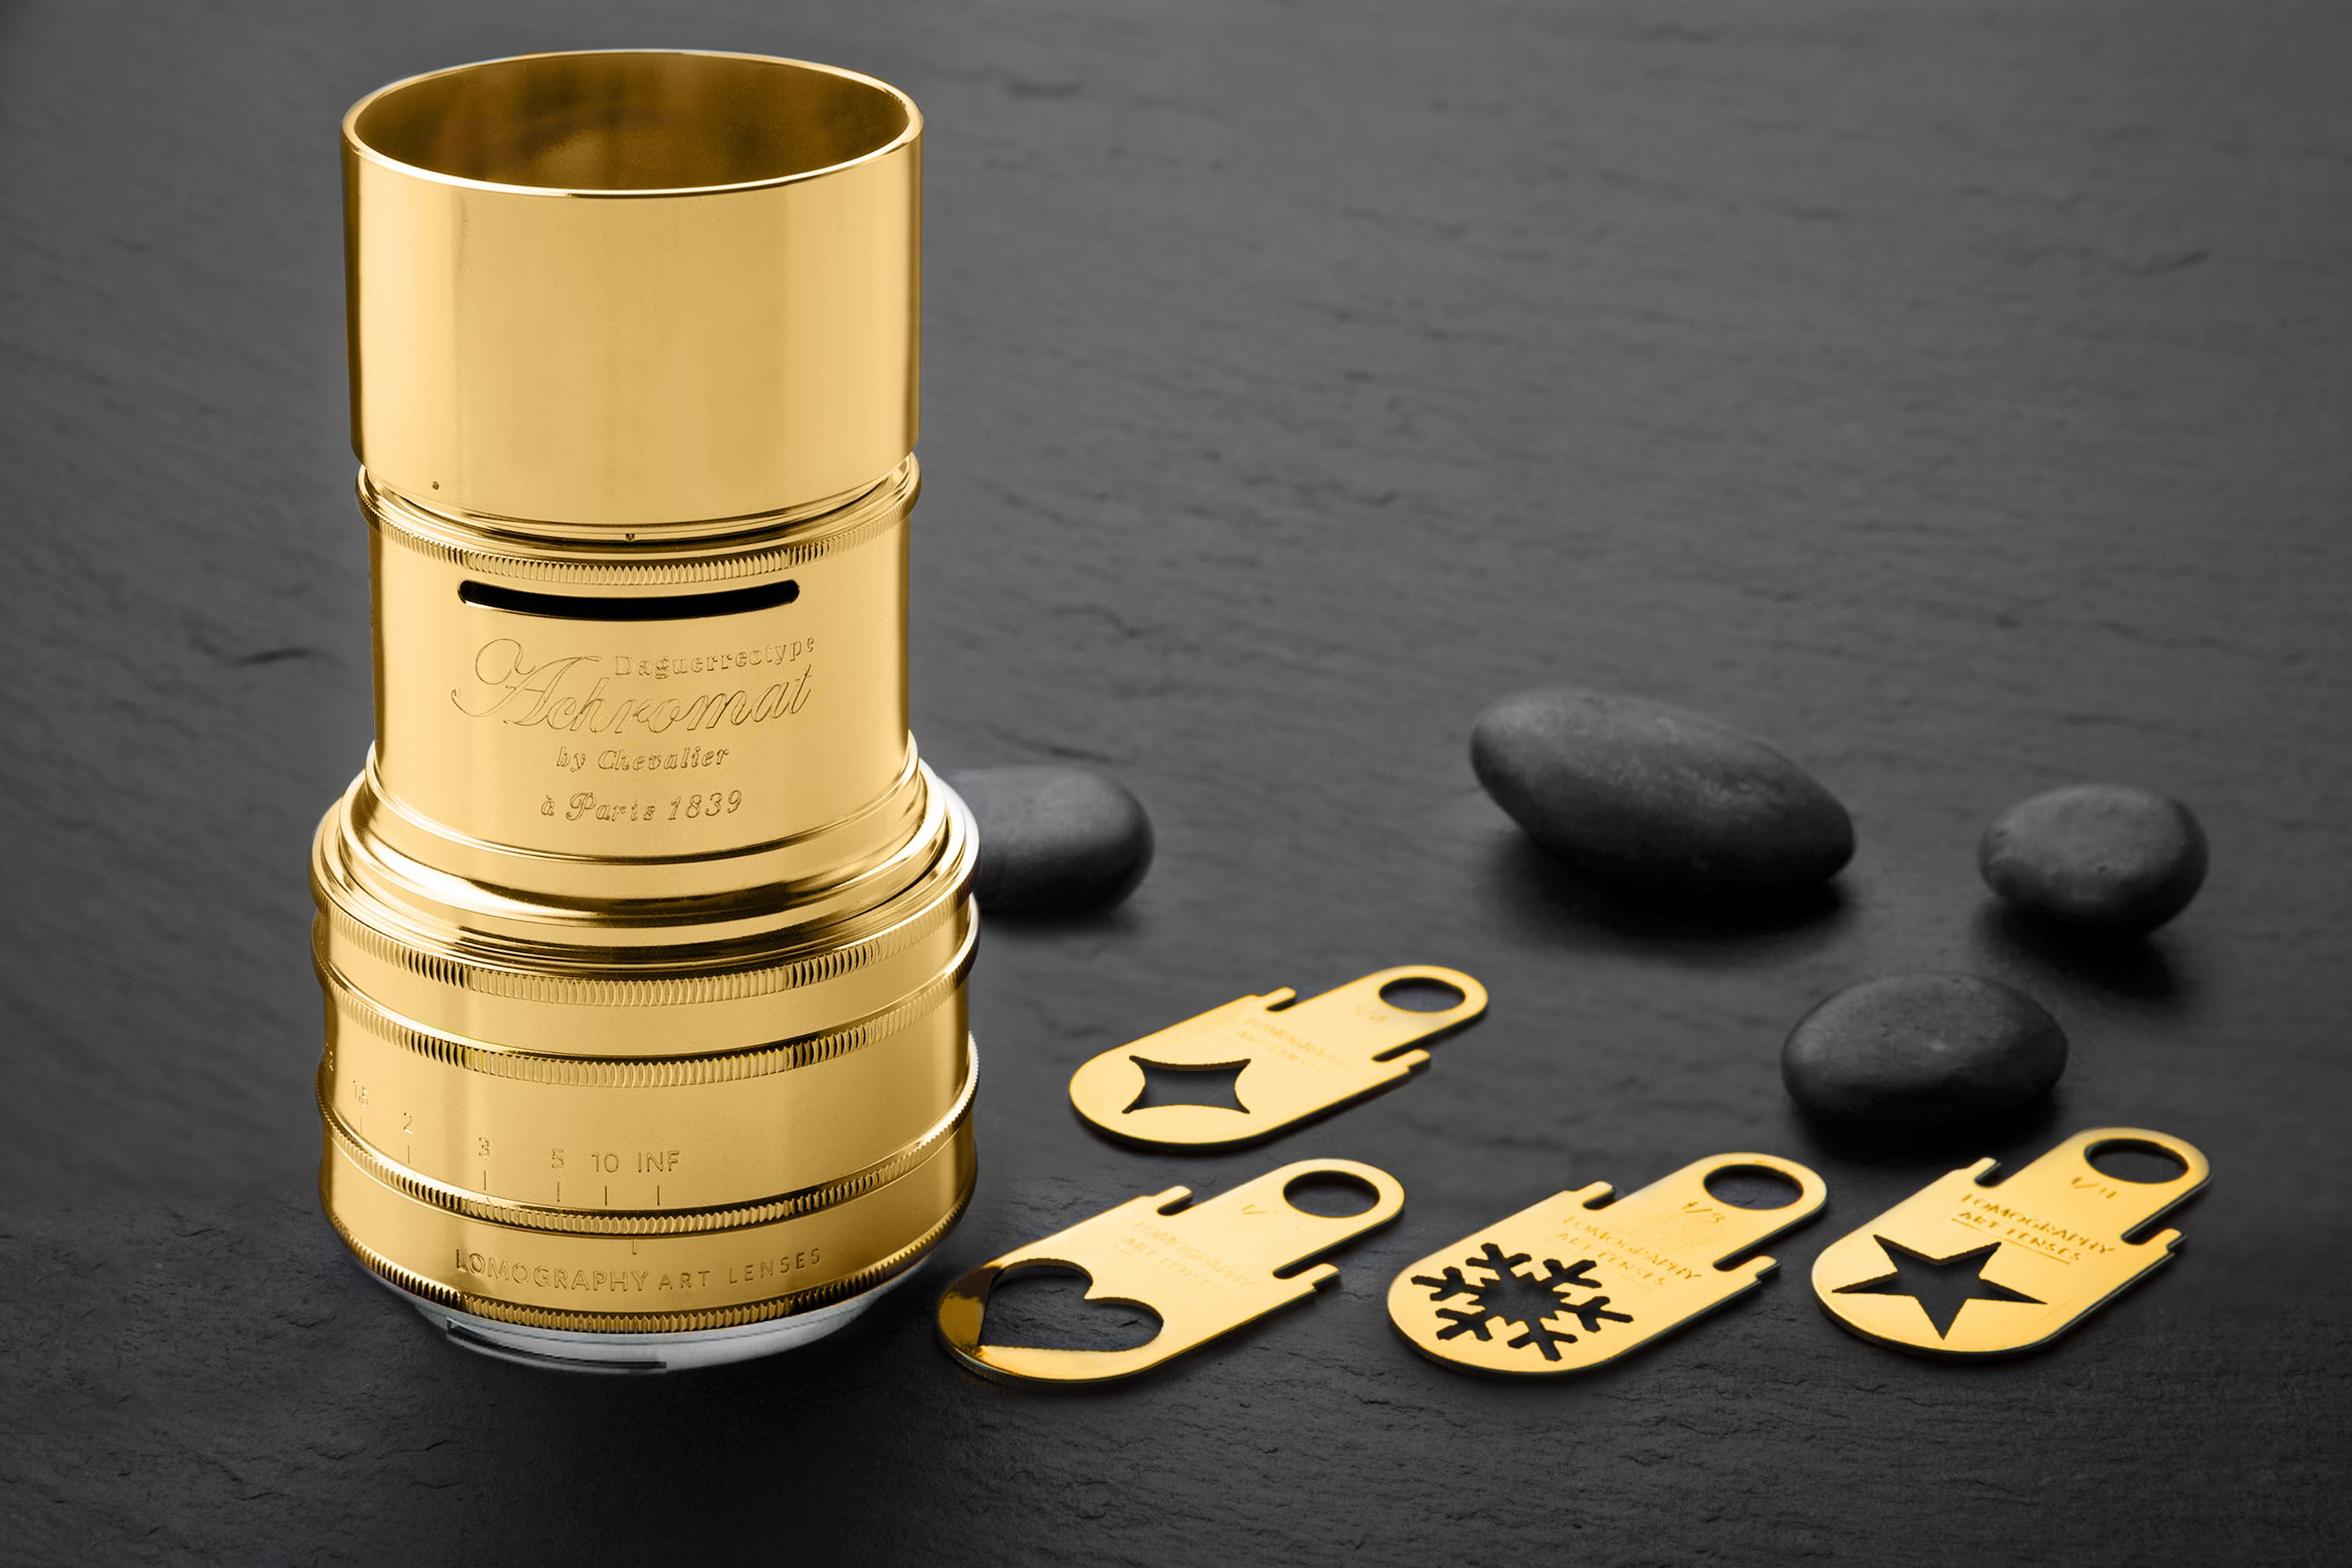 Lomography Daguerreotype Achromat Lens Now Comes in a Gold-Plated Edition